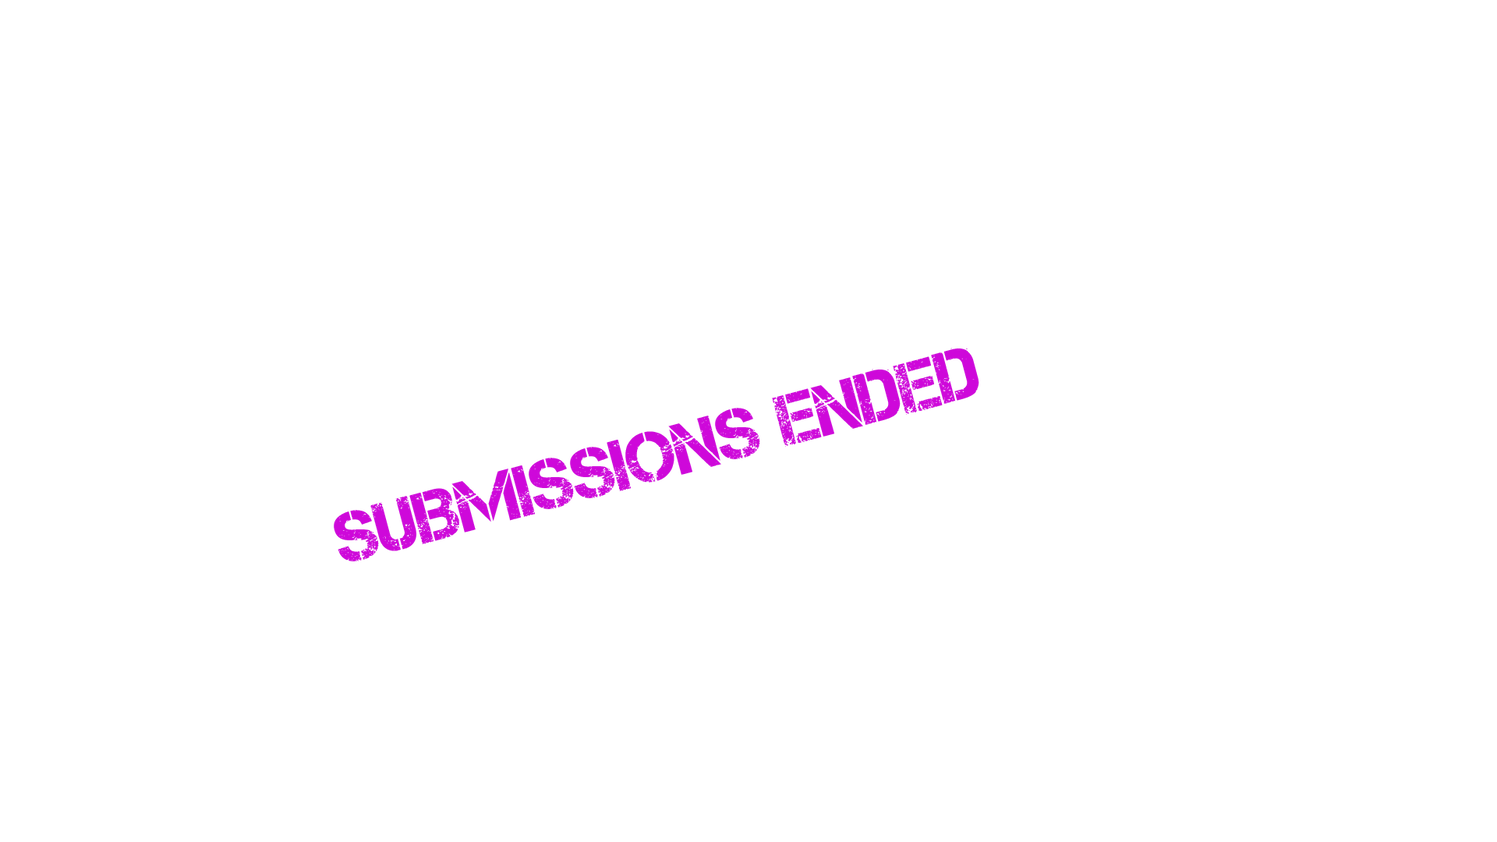 SUBMISSIONS ENDED.png